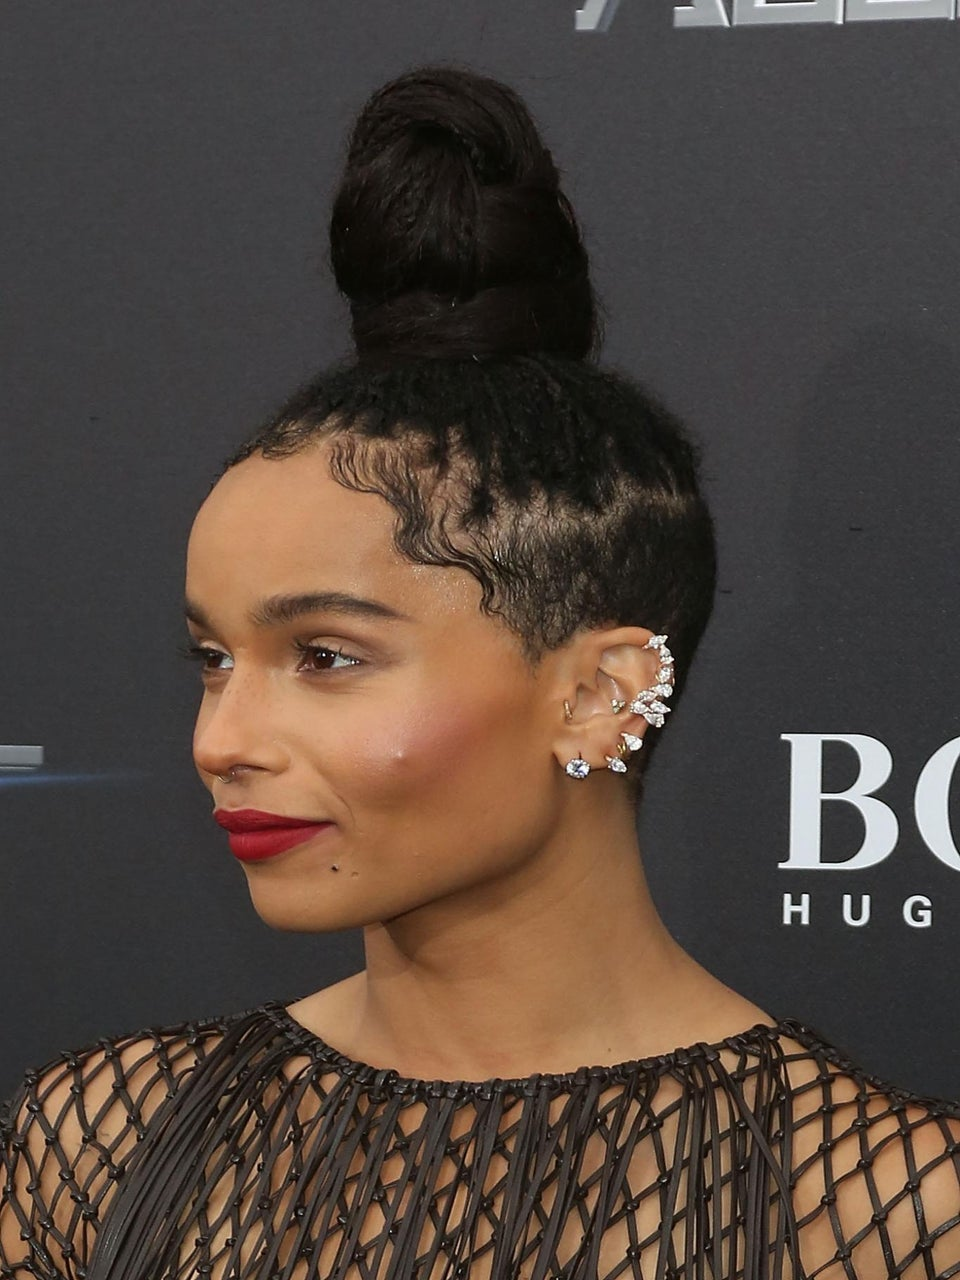 You'll Never Guess The Height of Zoe Kravitz's Top Knot